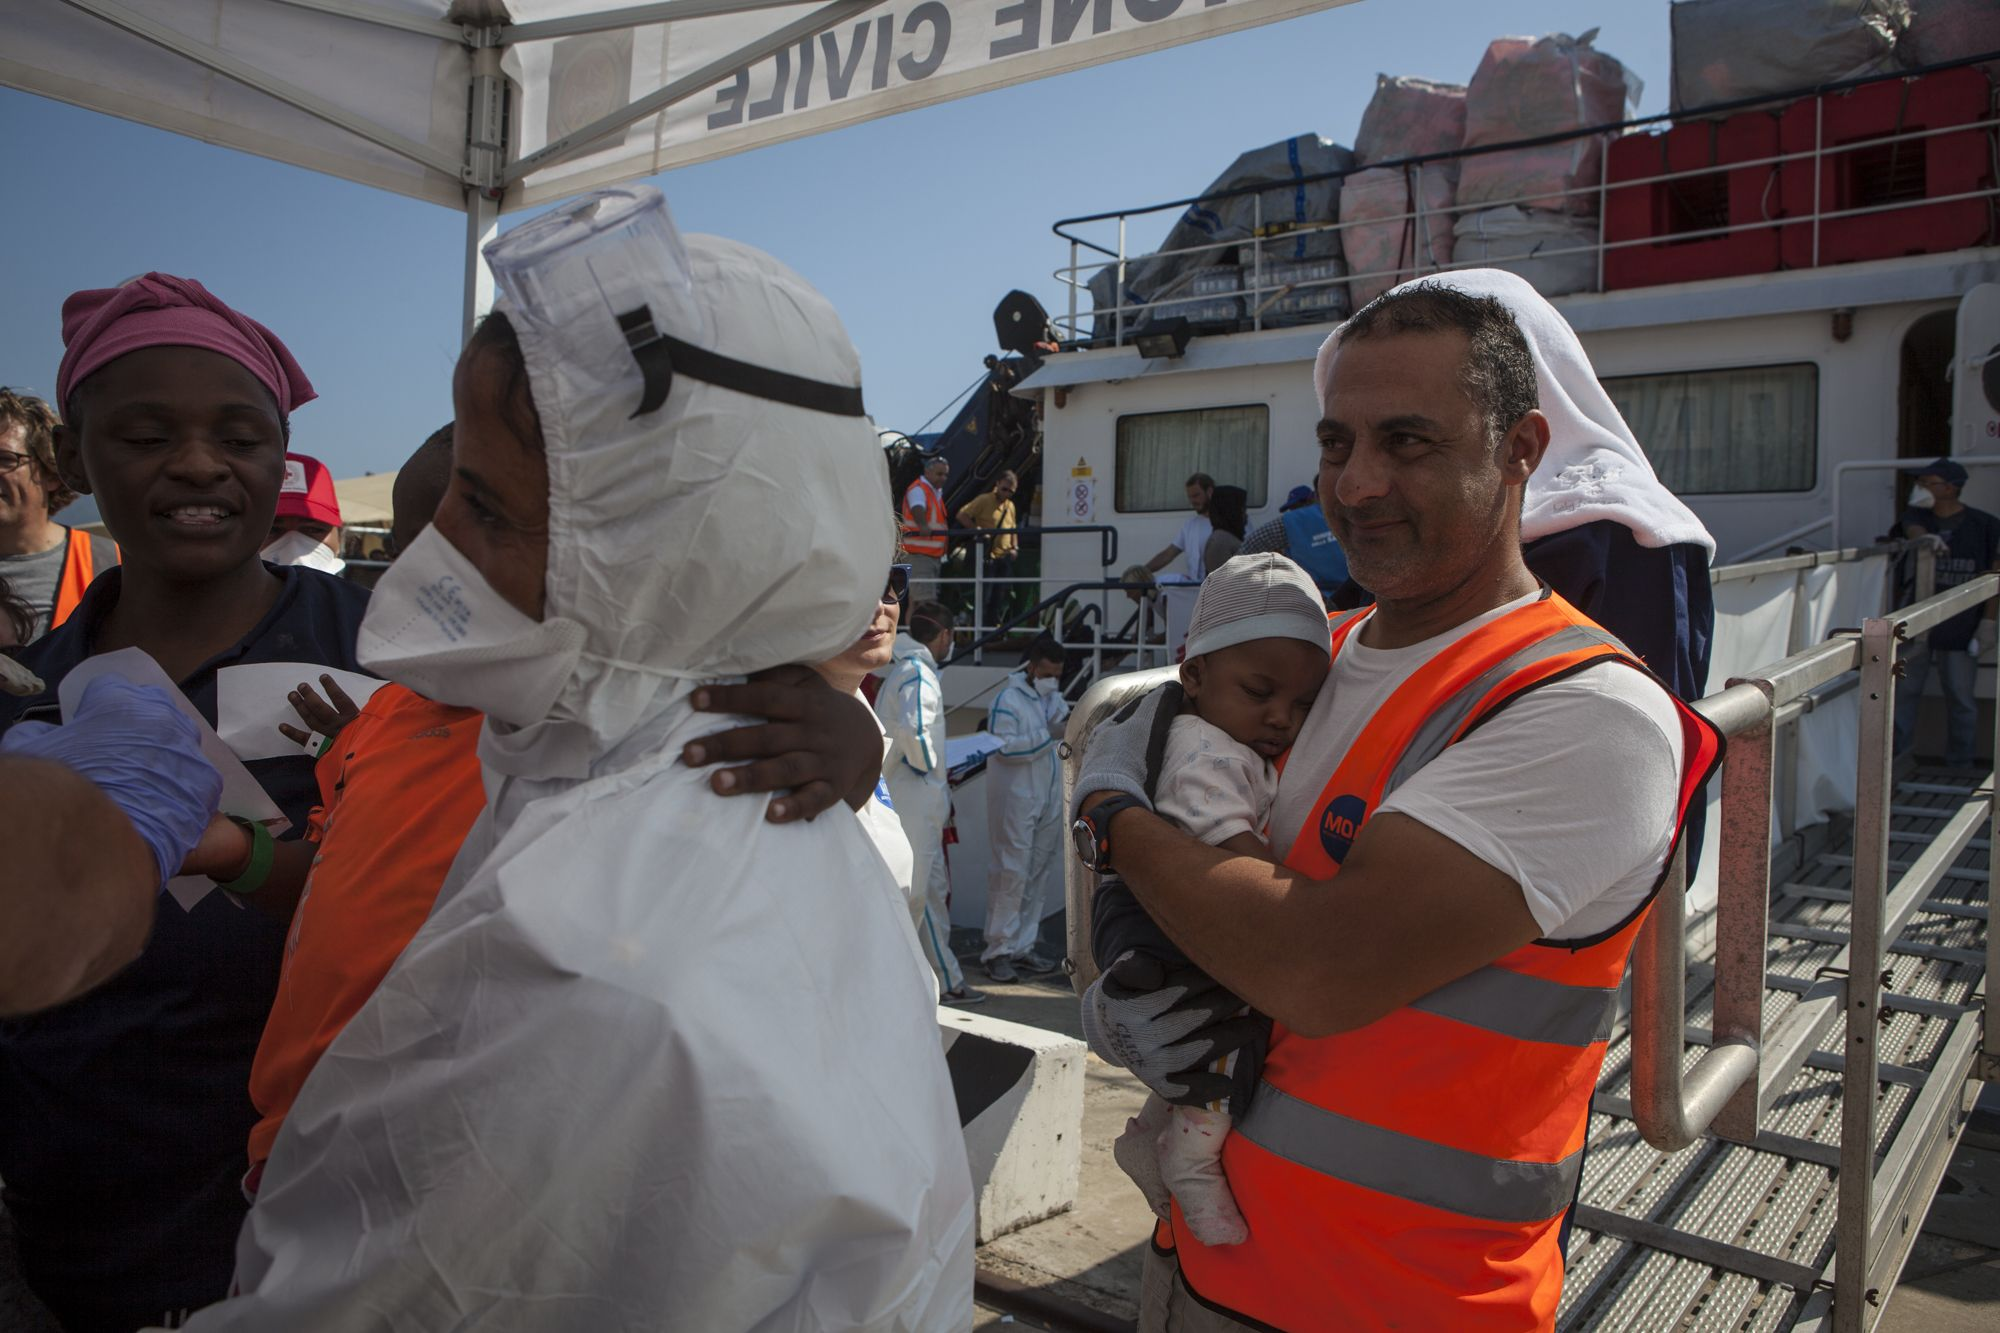 Mimmo one of the members of the MOAS search and rescue team who had help save 4 month old Daryl and his family two days before, carries him ashore at the port of Messina, Sicily. image © Jason Florio/MOAS_EU, 2015. All rights reserved